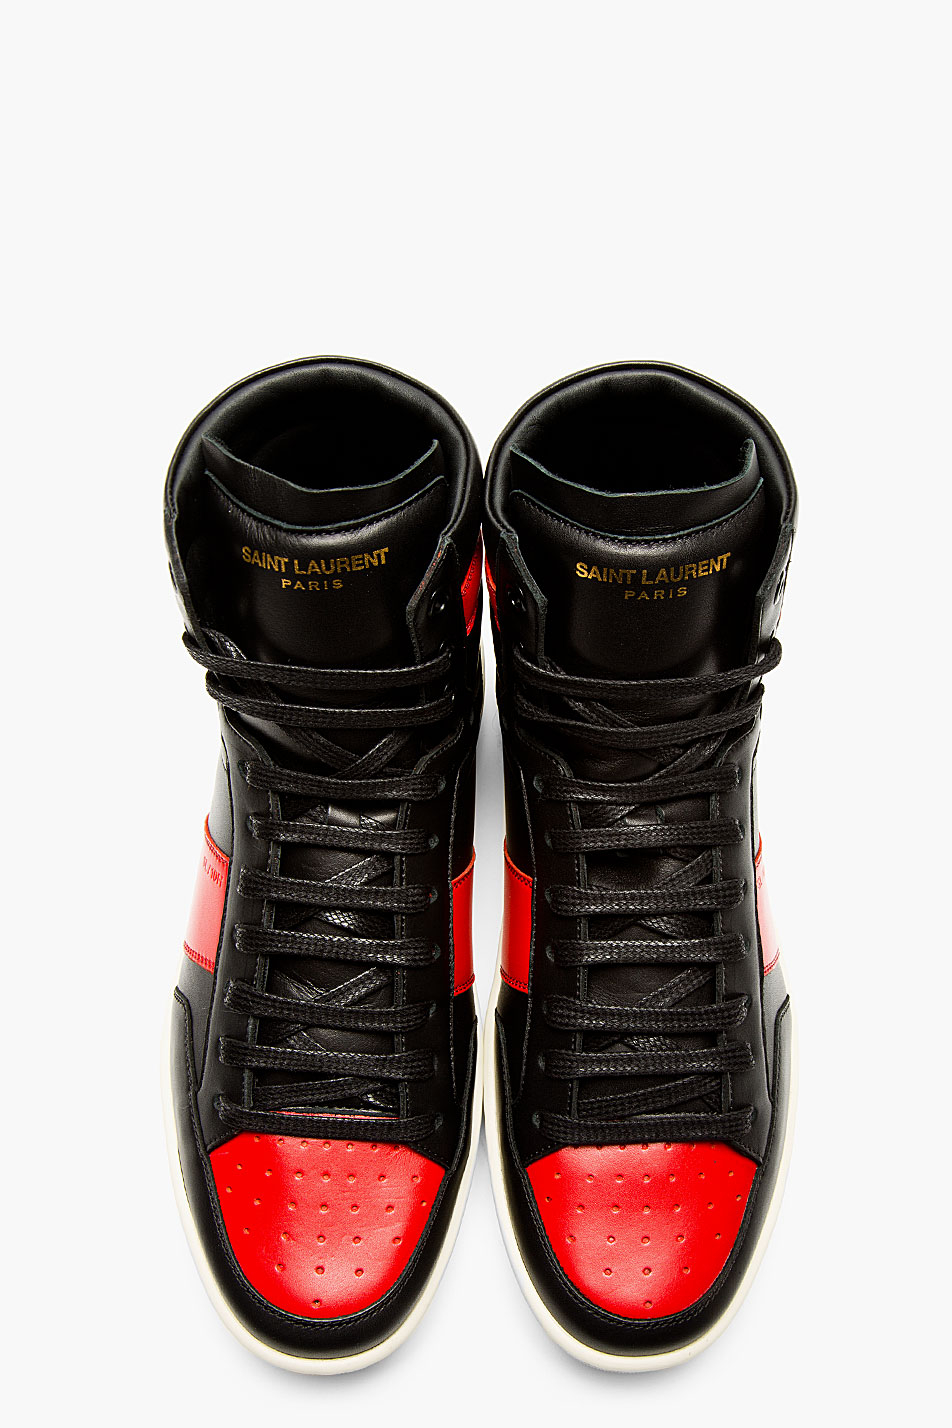 Saint Laurent Black And Red Leather High Top Sneakers In